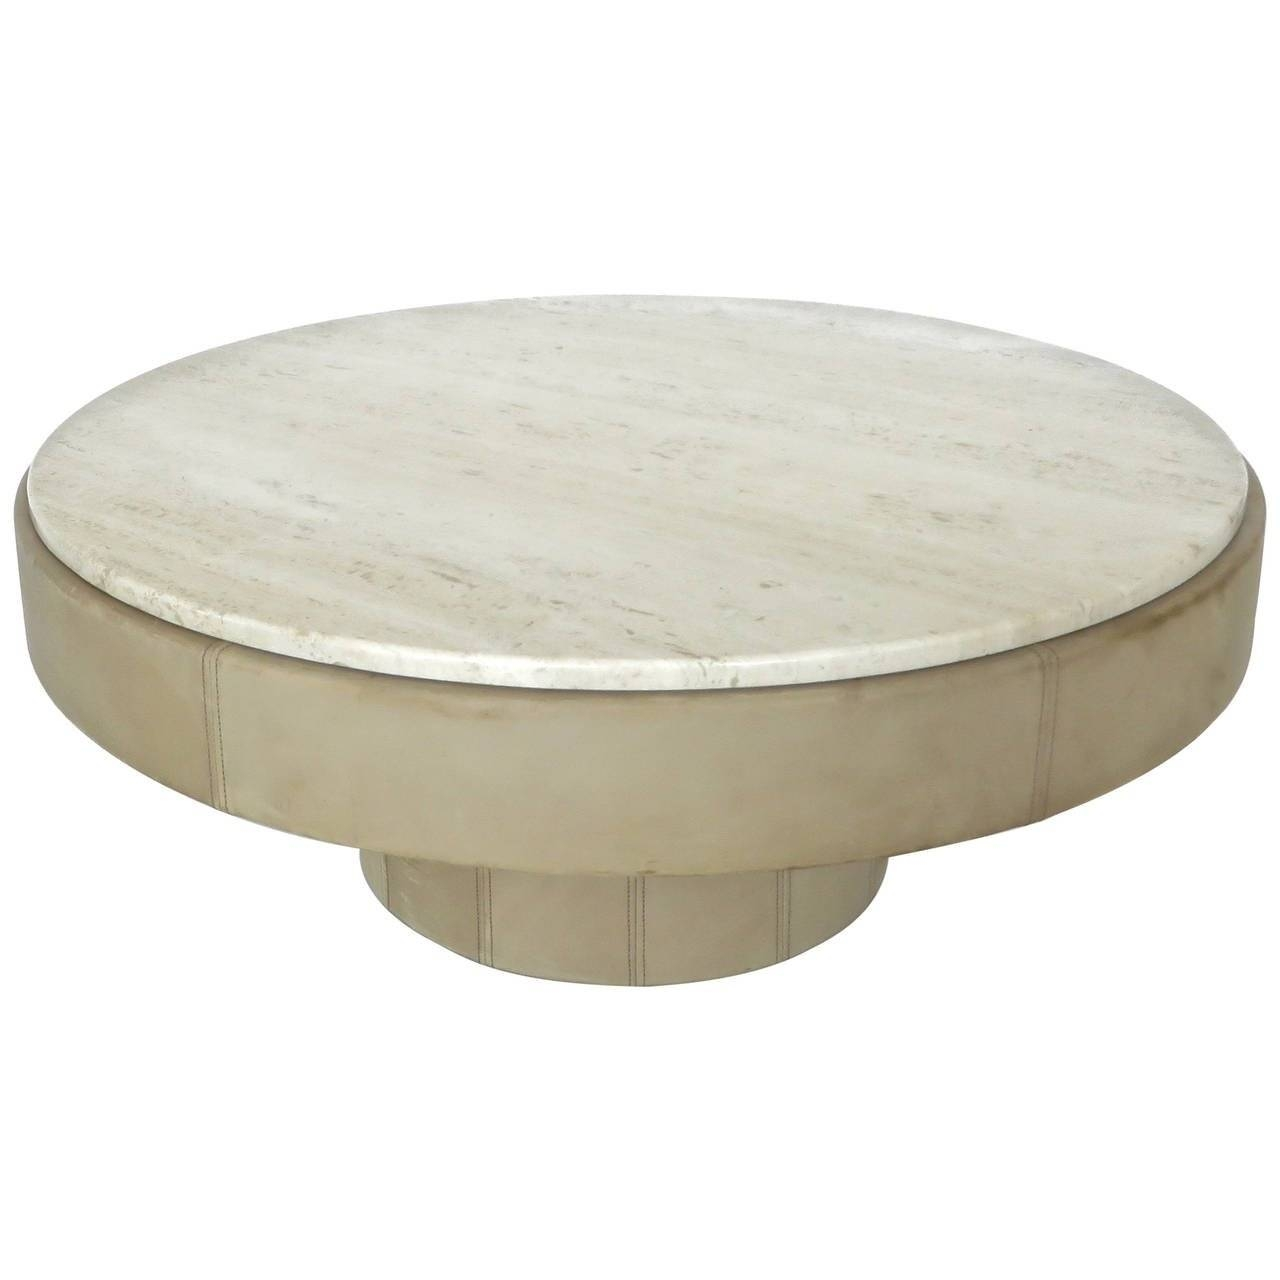 French Cream Leather And Travertine Marble Round Coffee Table At with regard to Marble Round Coffee Tables (Image 20 of 30)